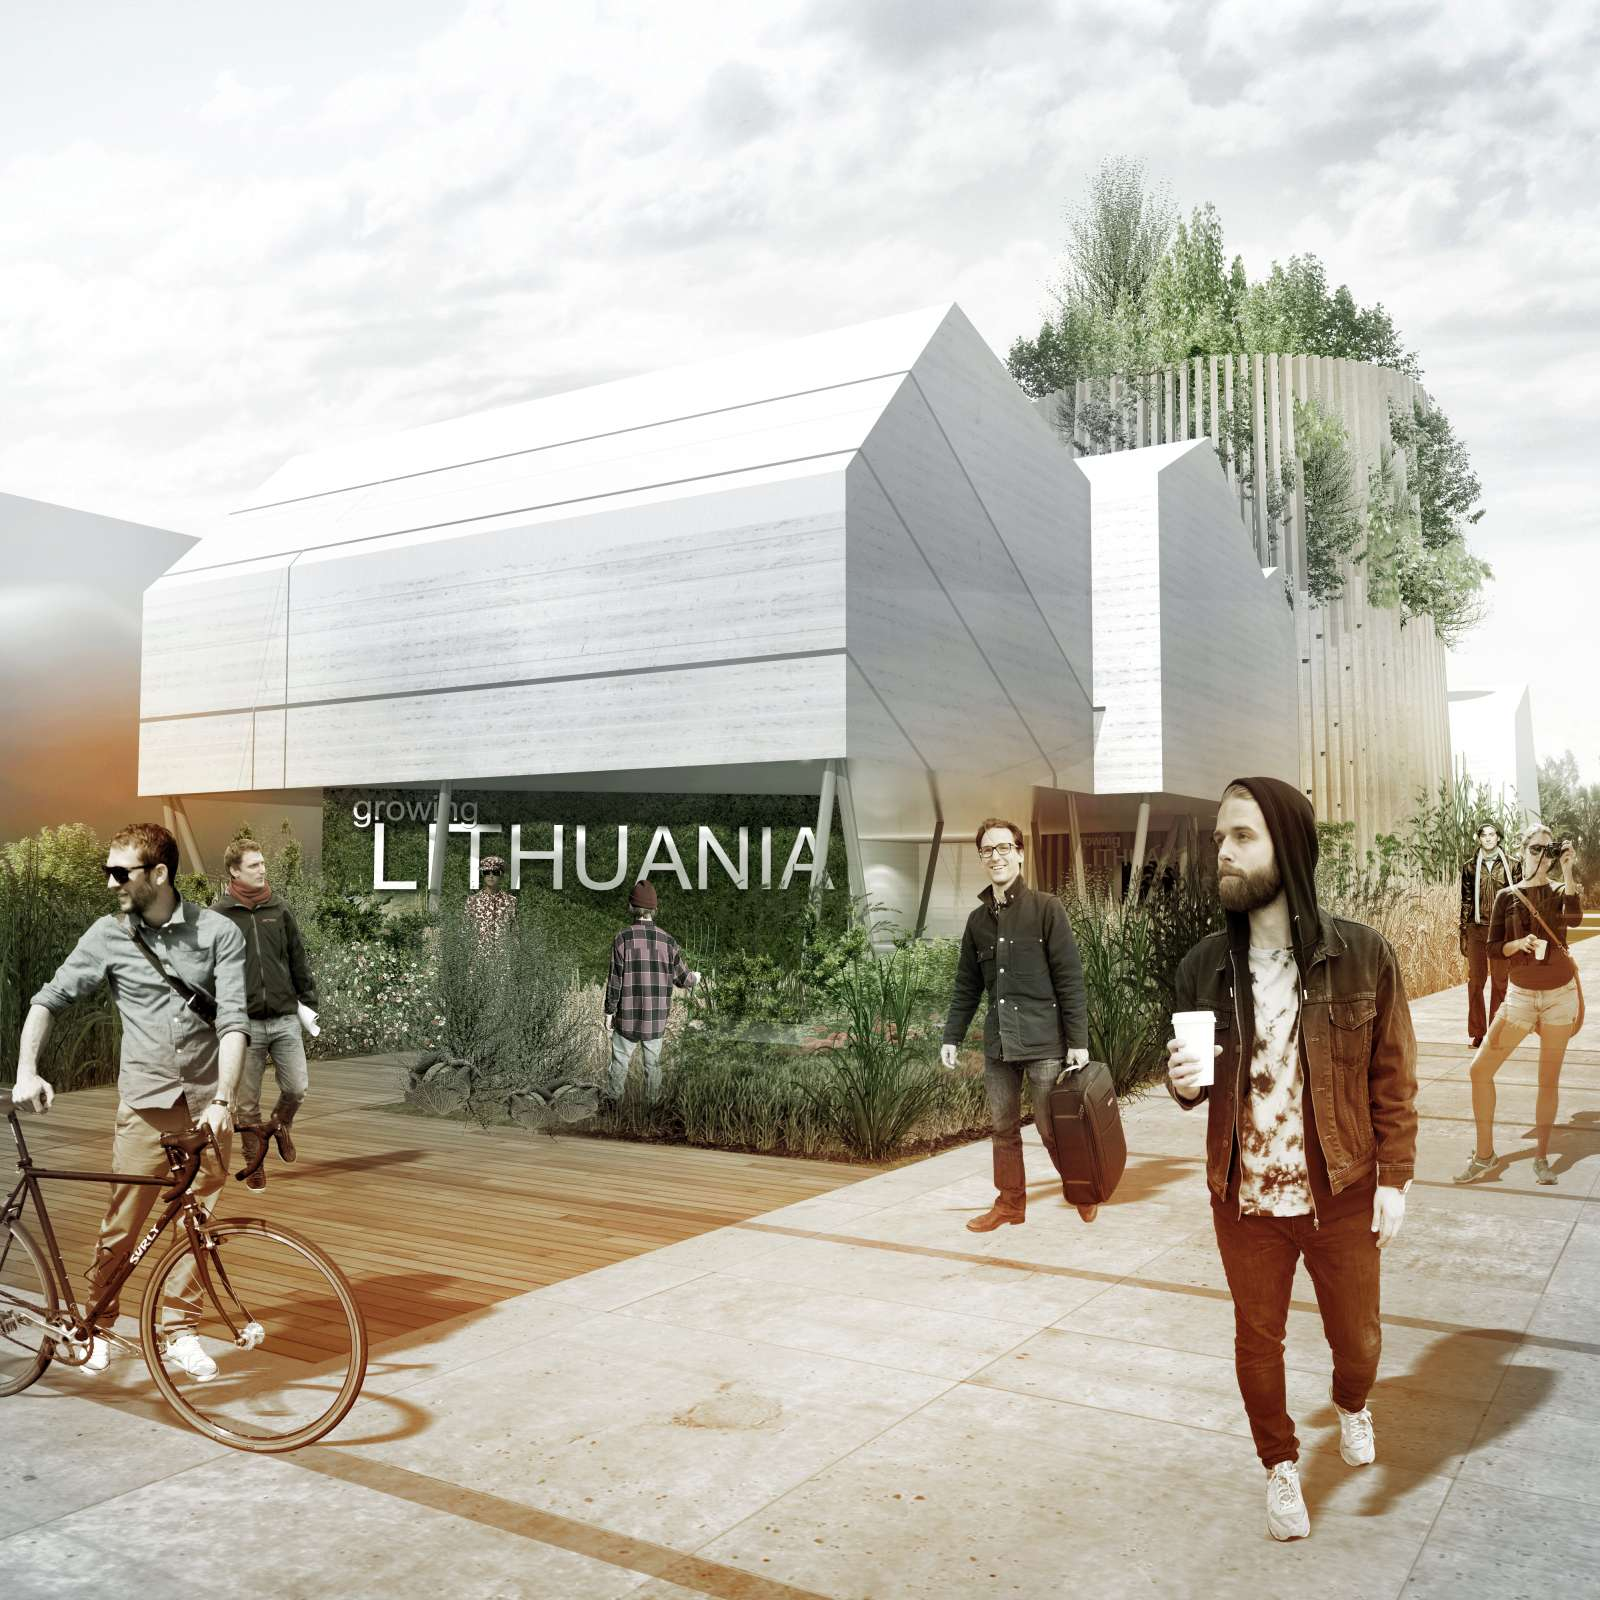 01-Lithuanian-Pavilion-Expo-2015-by-Vilnius-Architecture-Studio